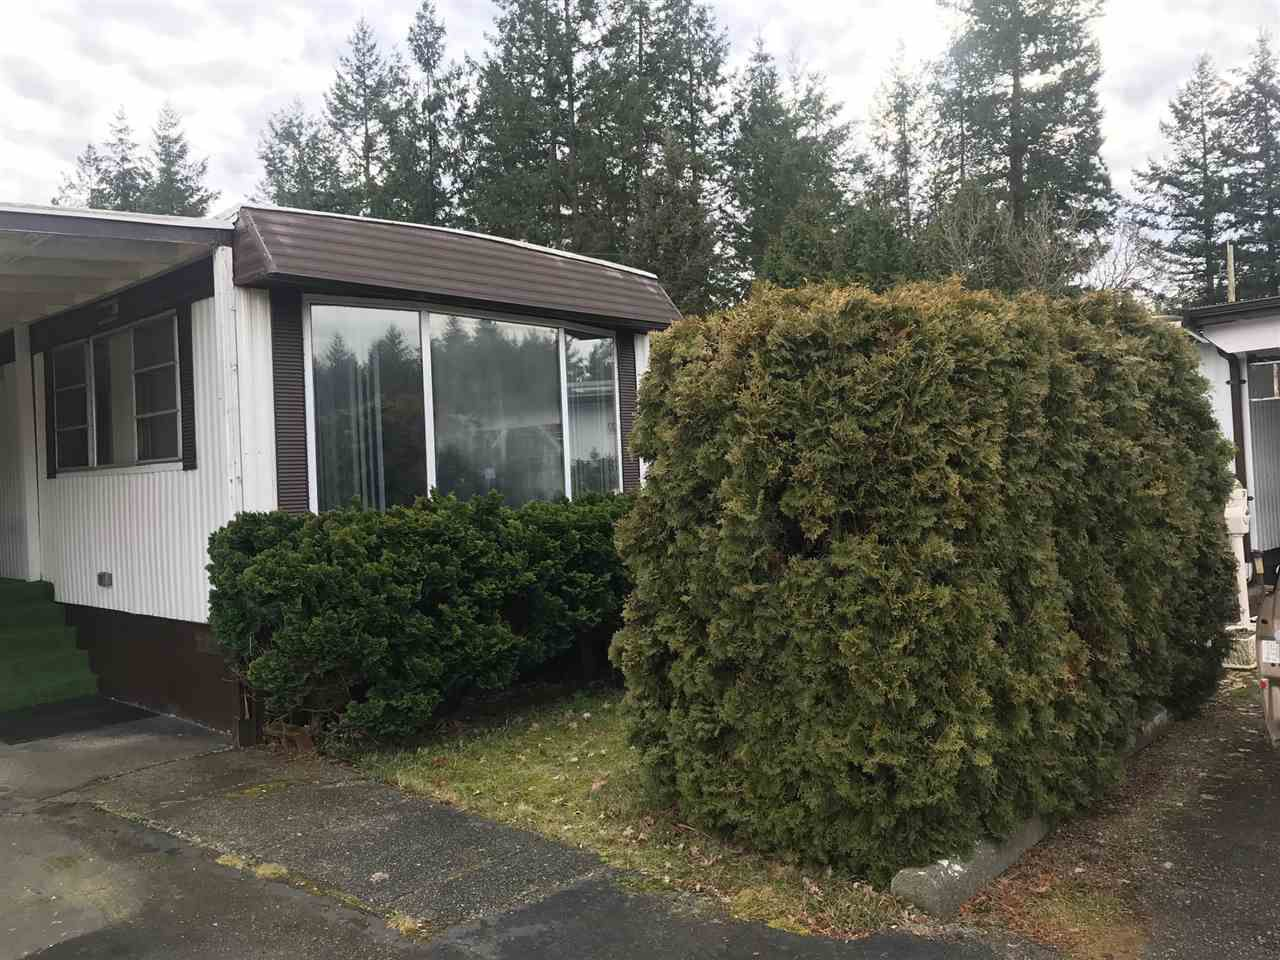 """Main Photo: 31 3031 200 Avenue in Langley: Brookswood Langley Manufactured Home for sale in """"Cedar Creek"""" : MLS®# R2337444"""